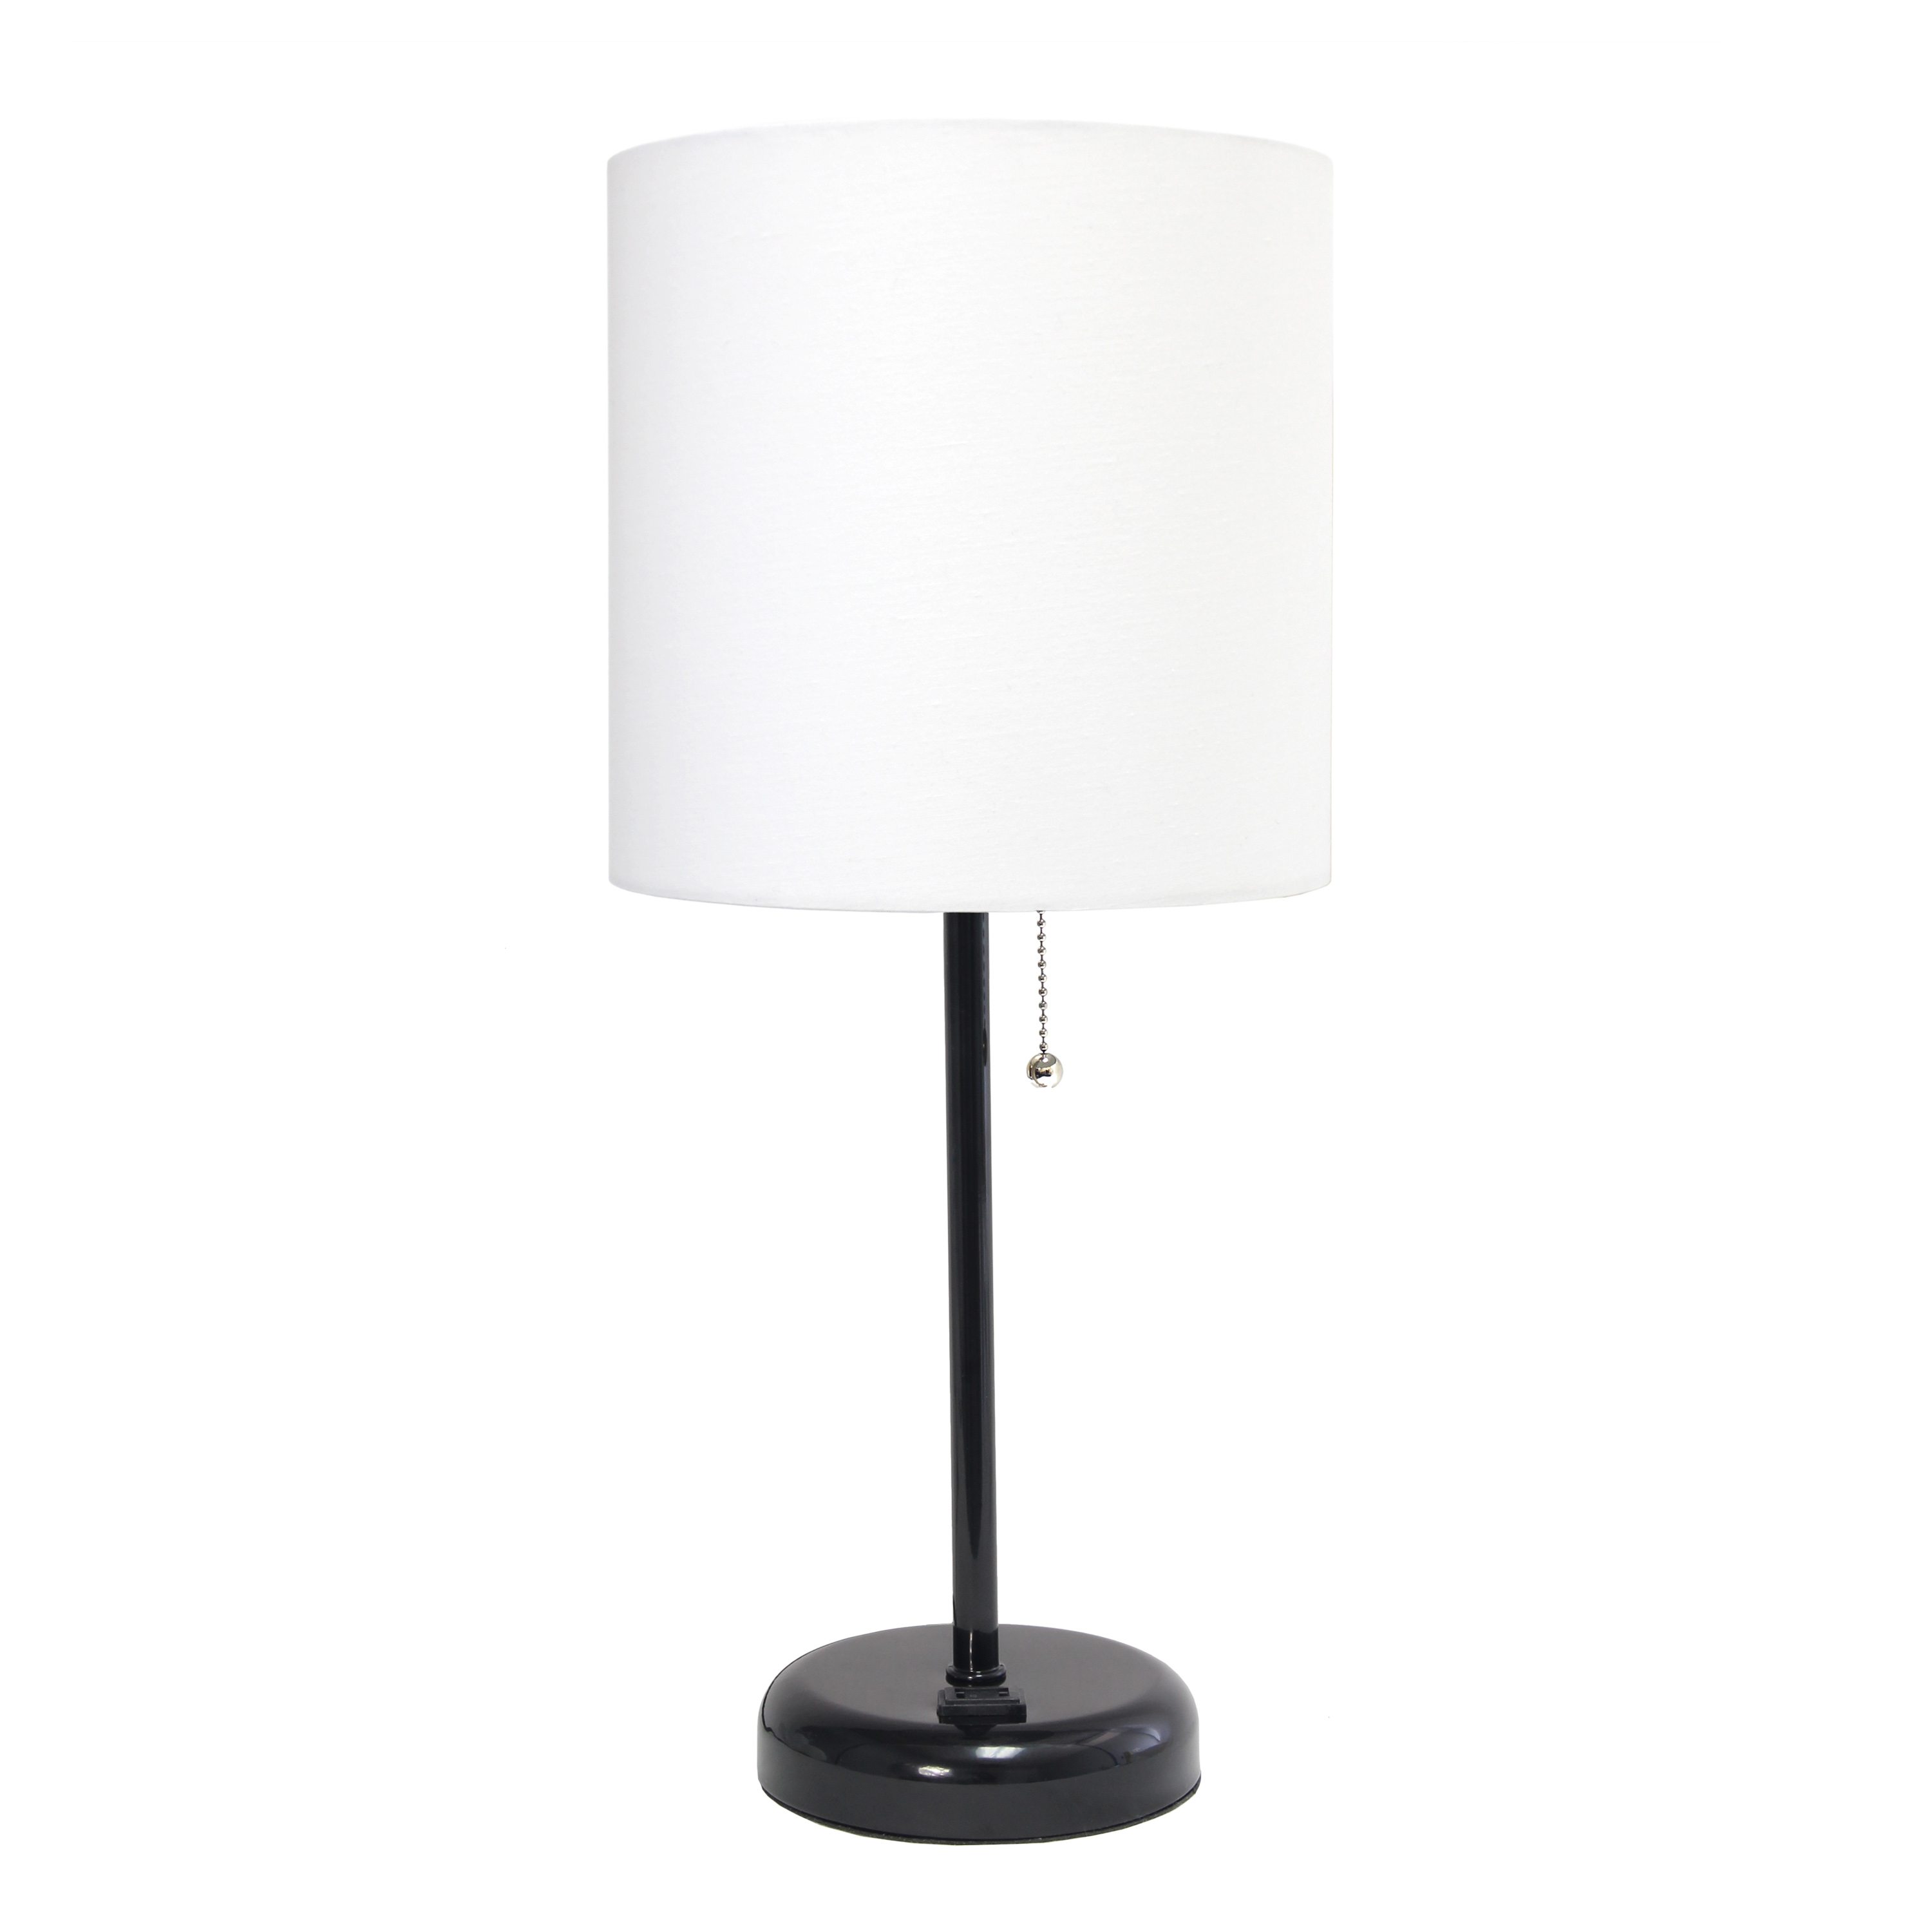 LimeLights Black Stick Lamp with Charging Outlet and Fabric Shade, White